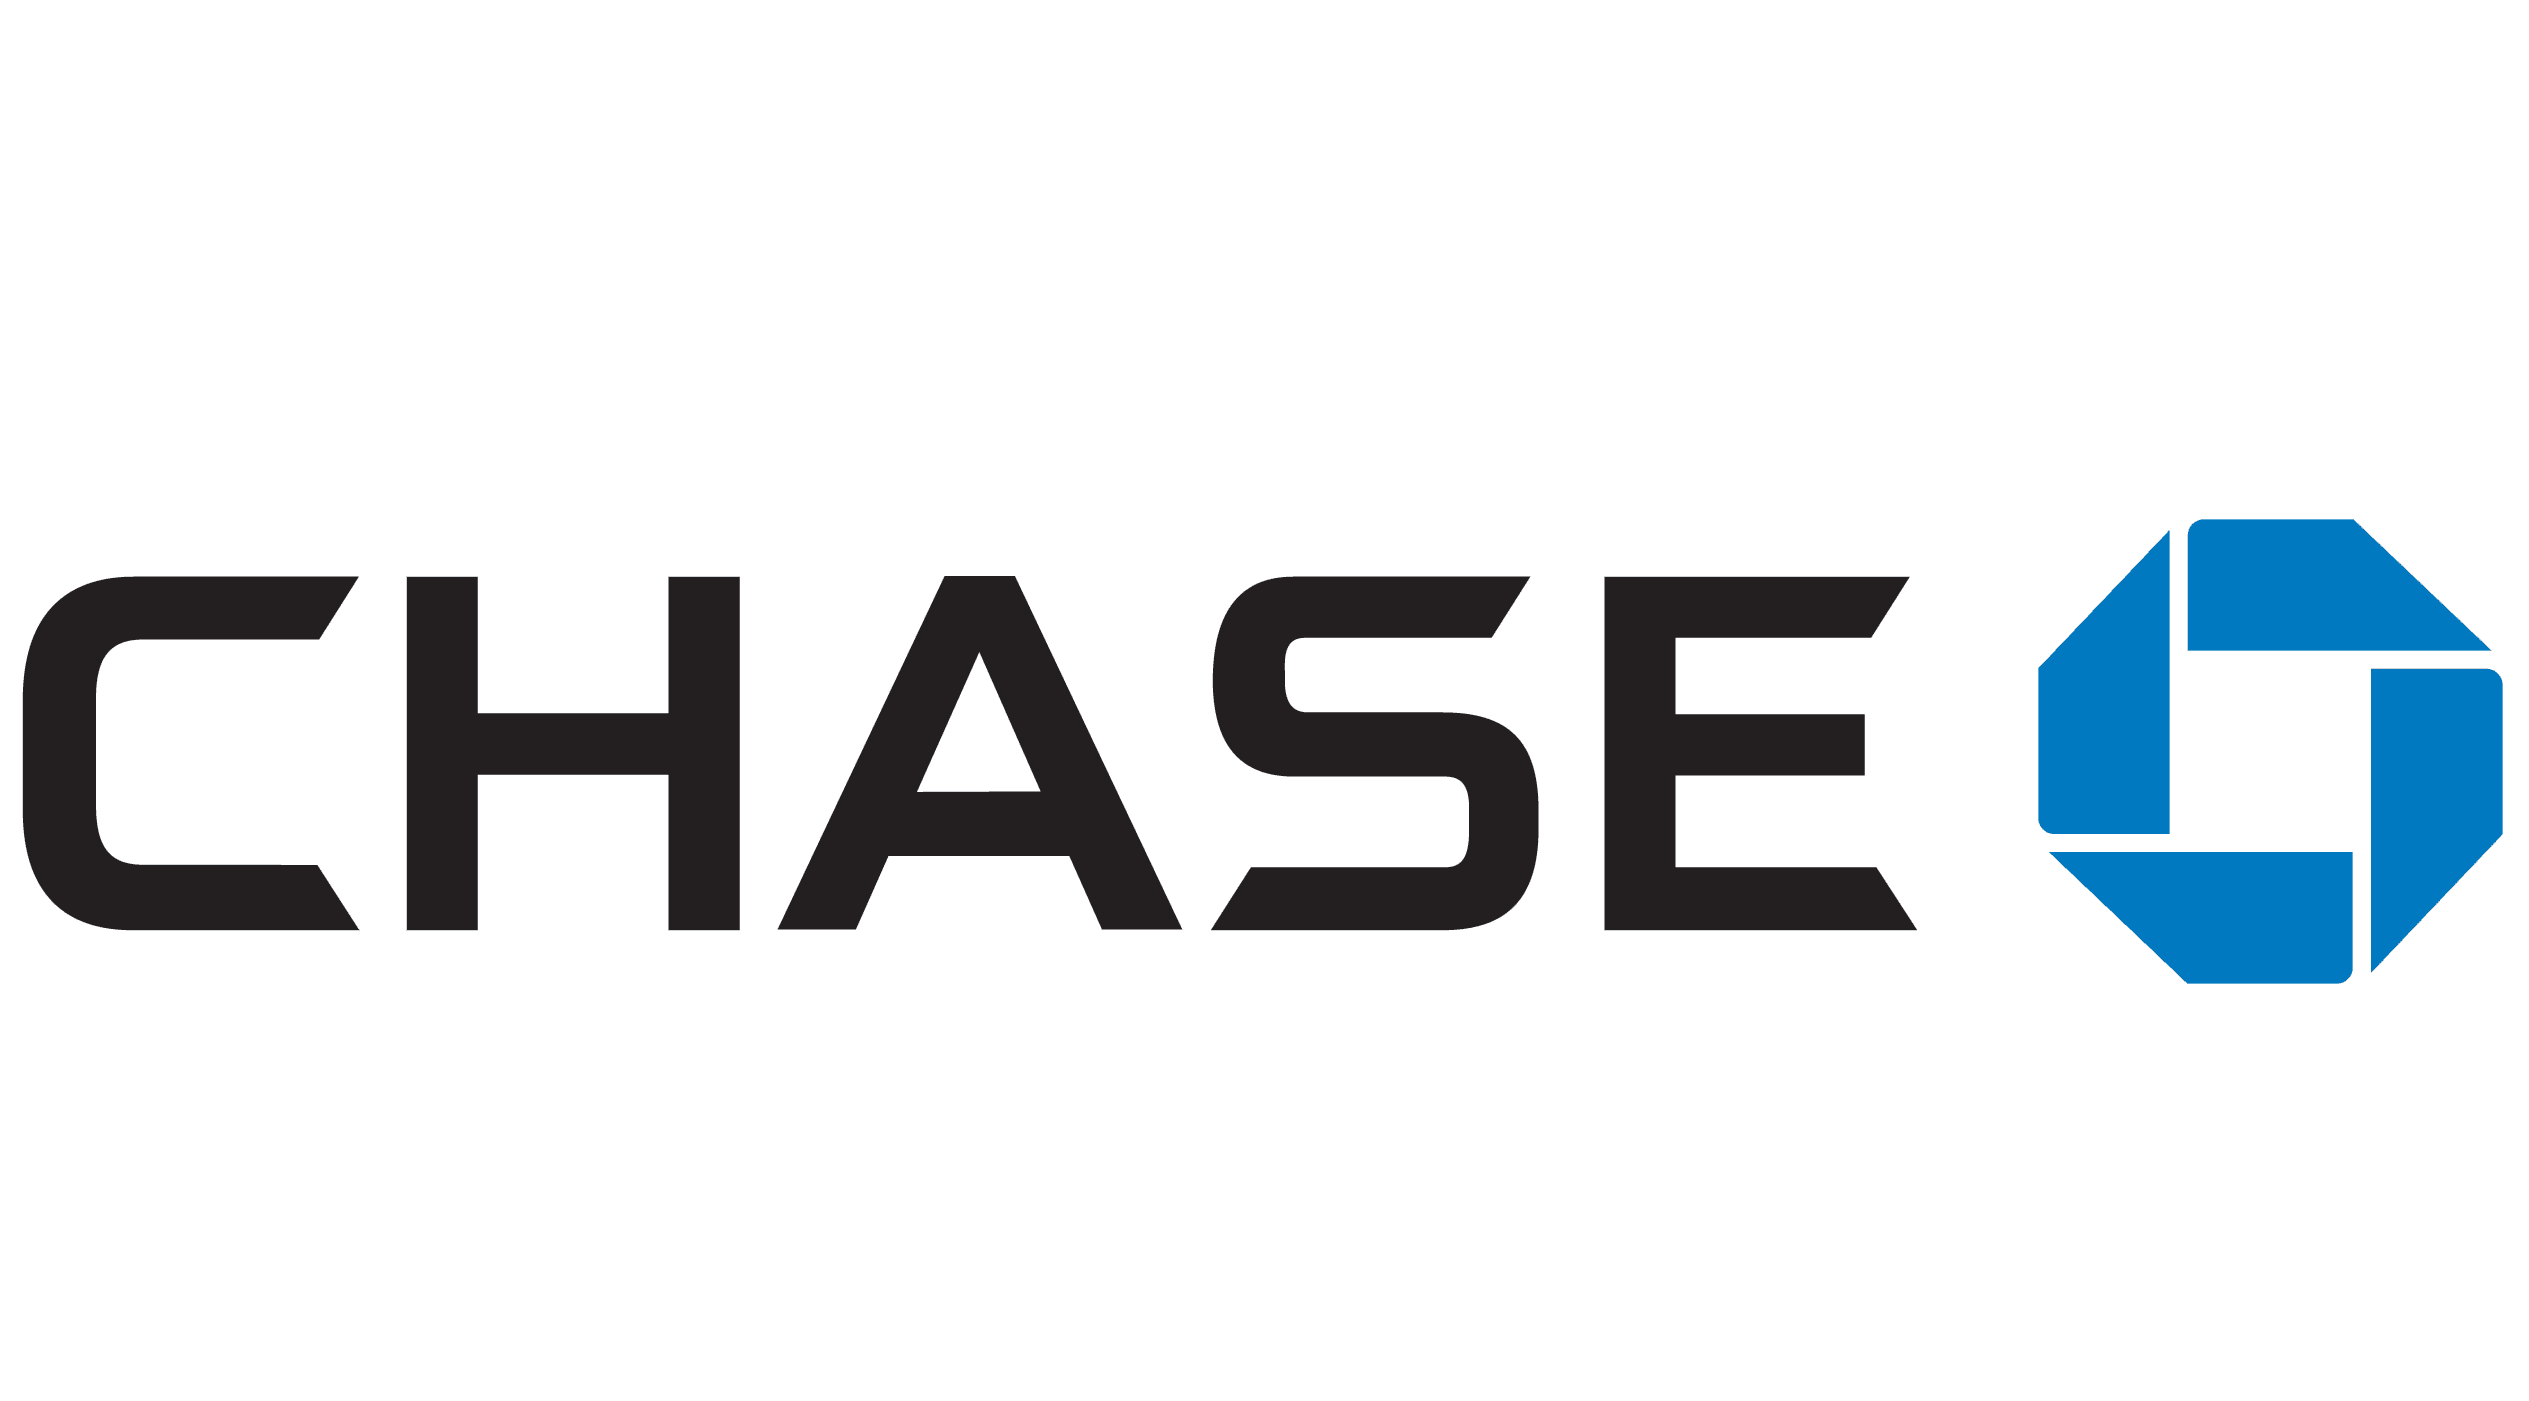 Chase short sale